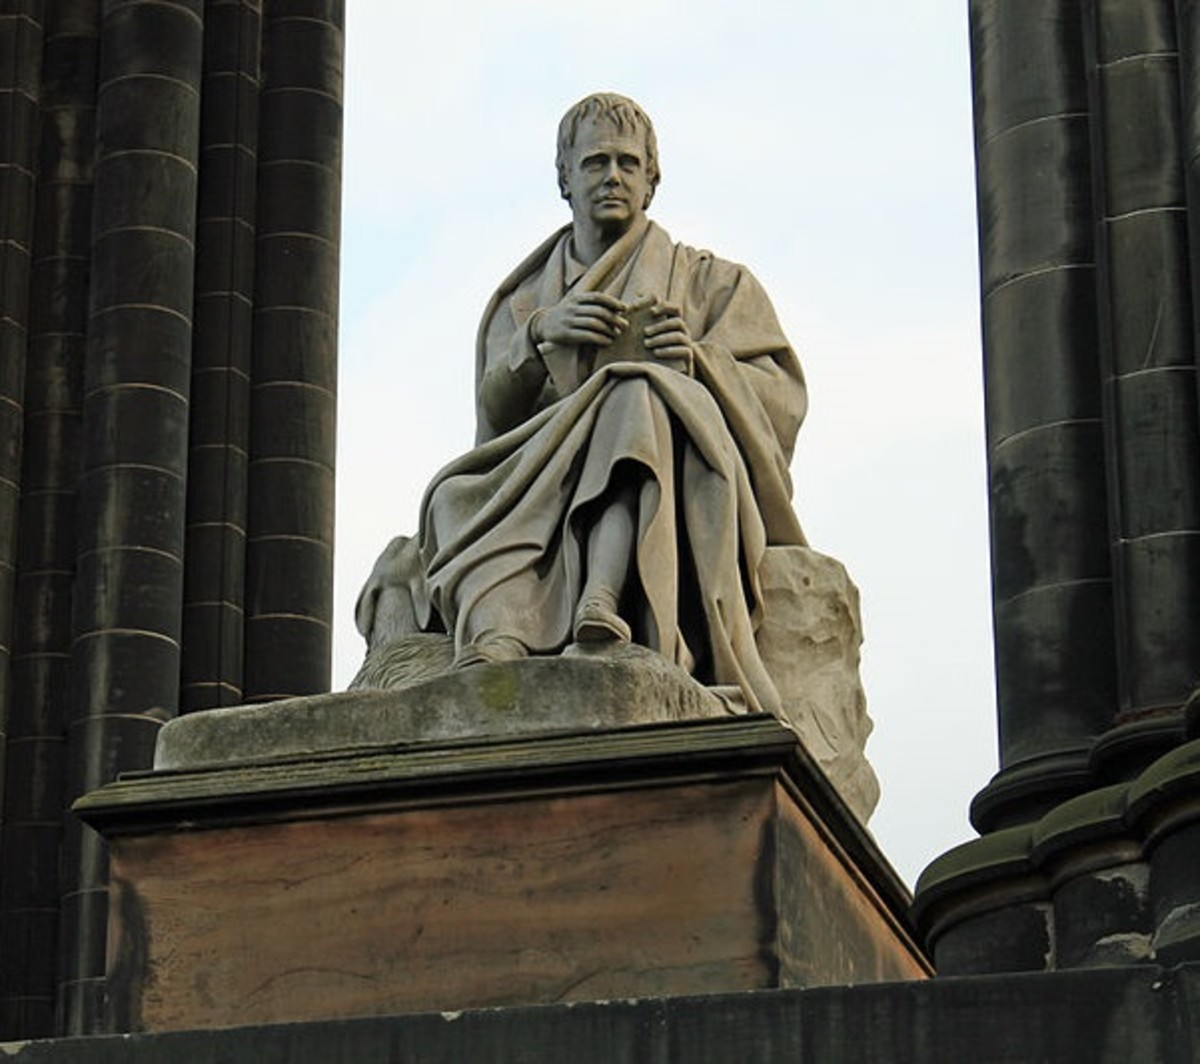 Monument to Sir Walter Scott in Edinburgh, Scotland.